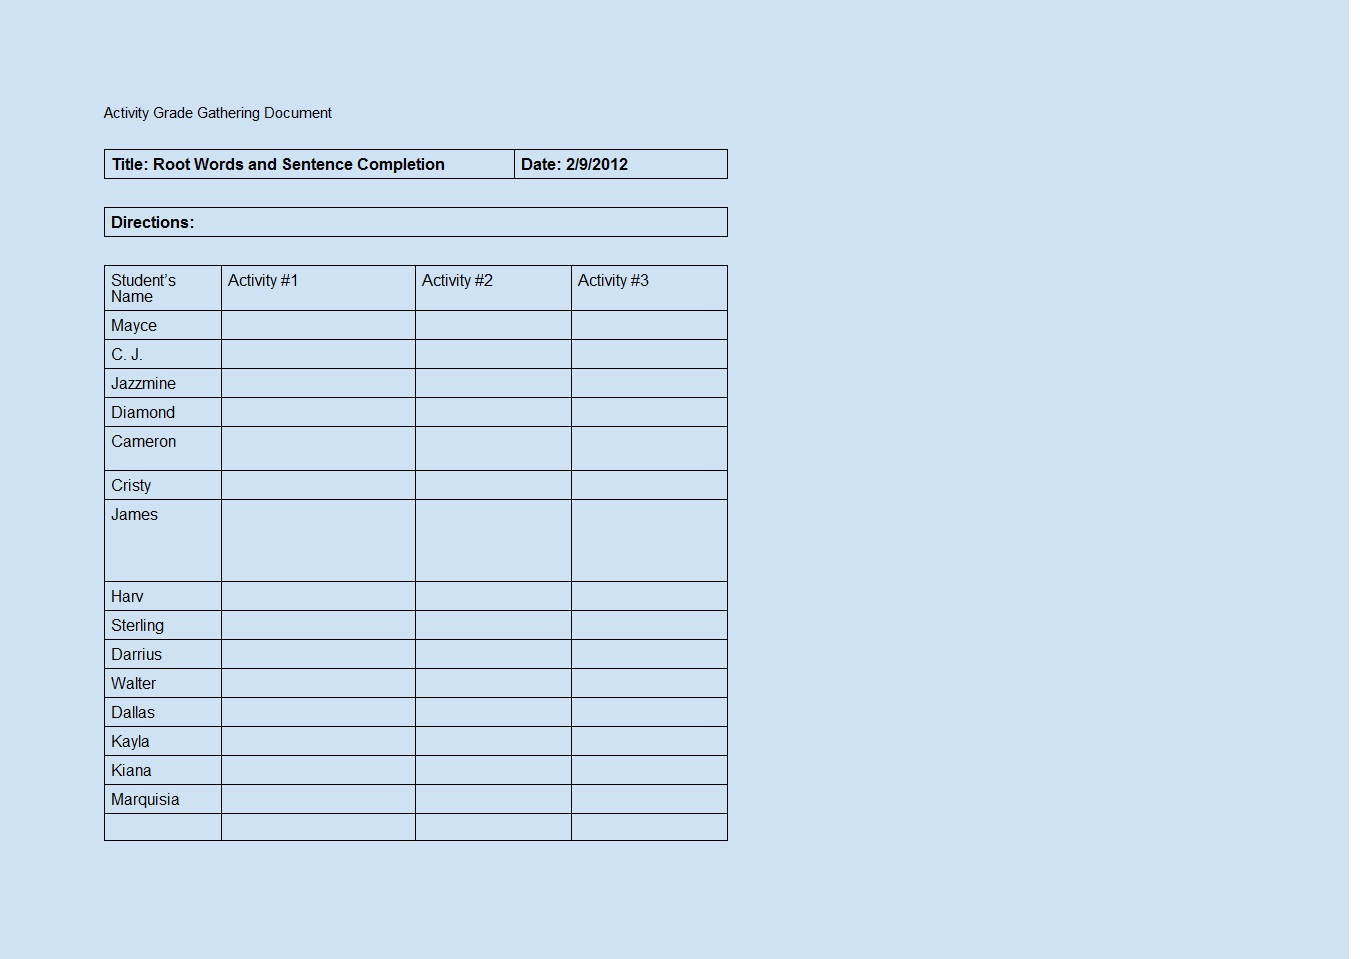 Activity Grade Gathering Word Template Template Sample